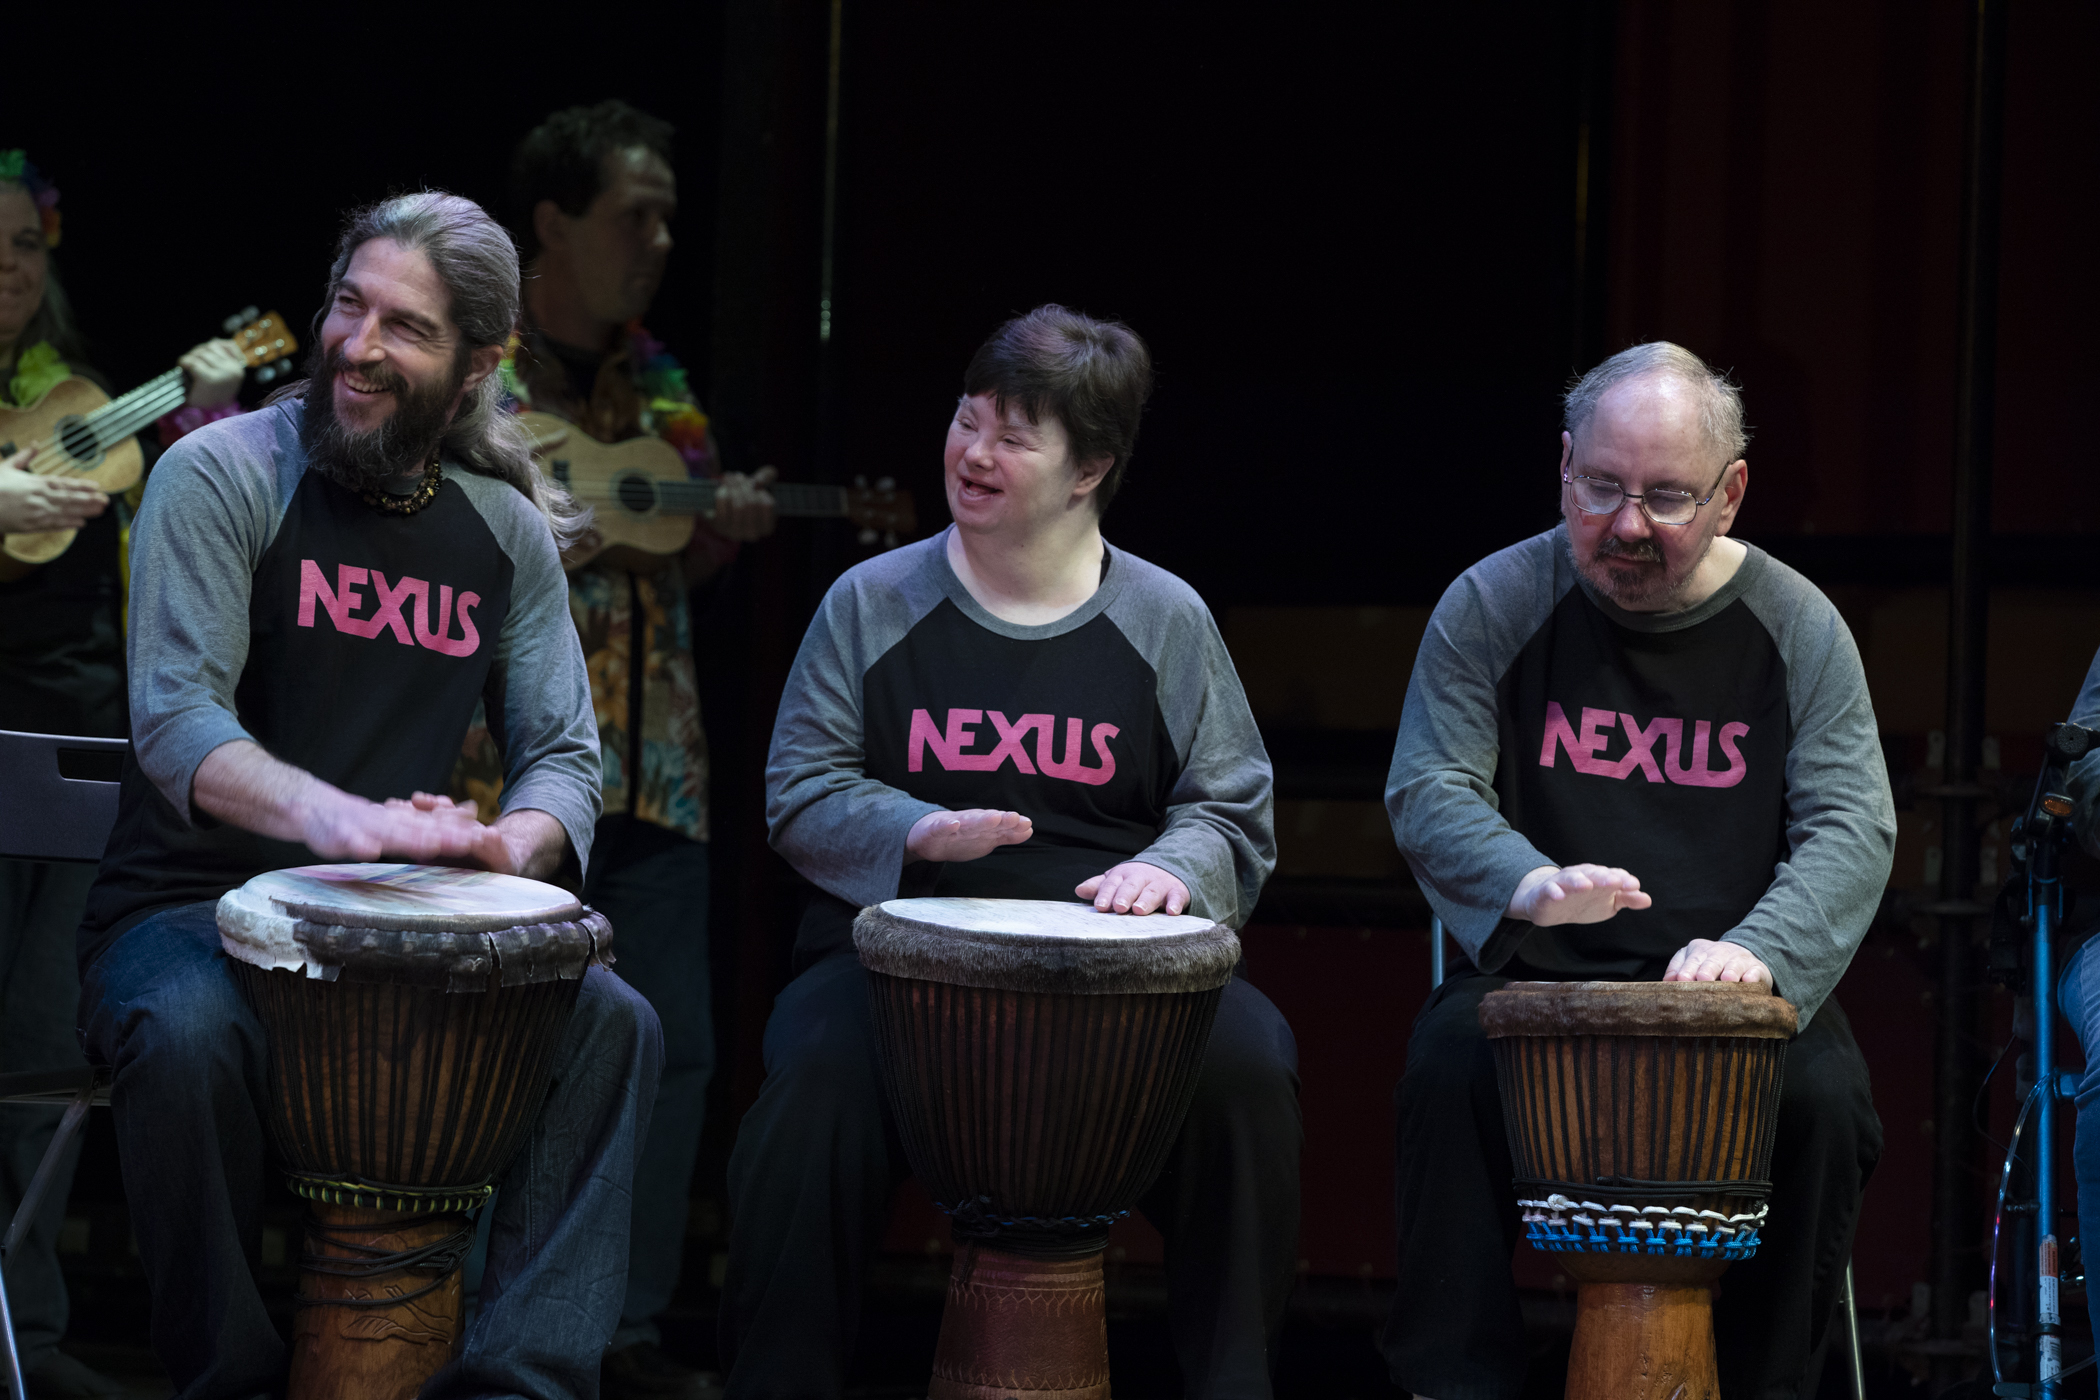 """Three people sit in a row playing drums. They are on stage, smiling, each wearing a shirt that says """"Nexus"""""""